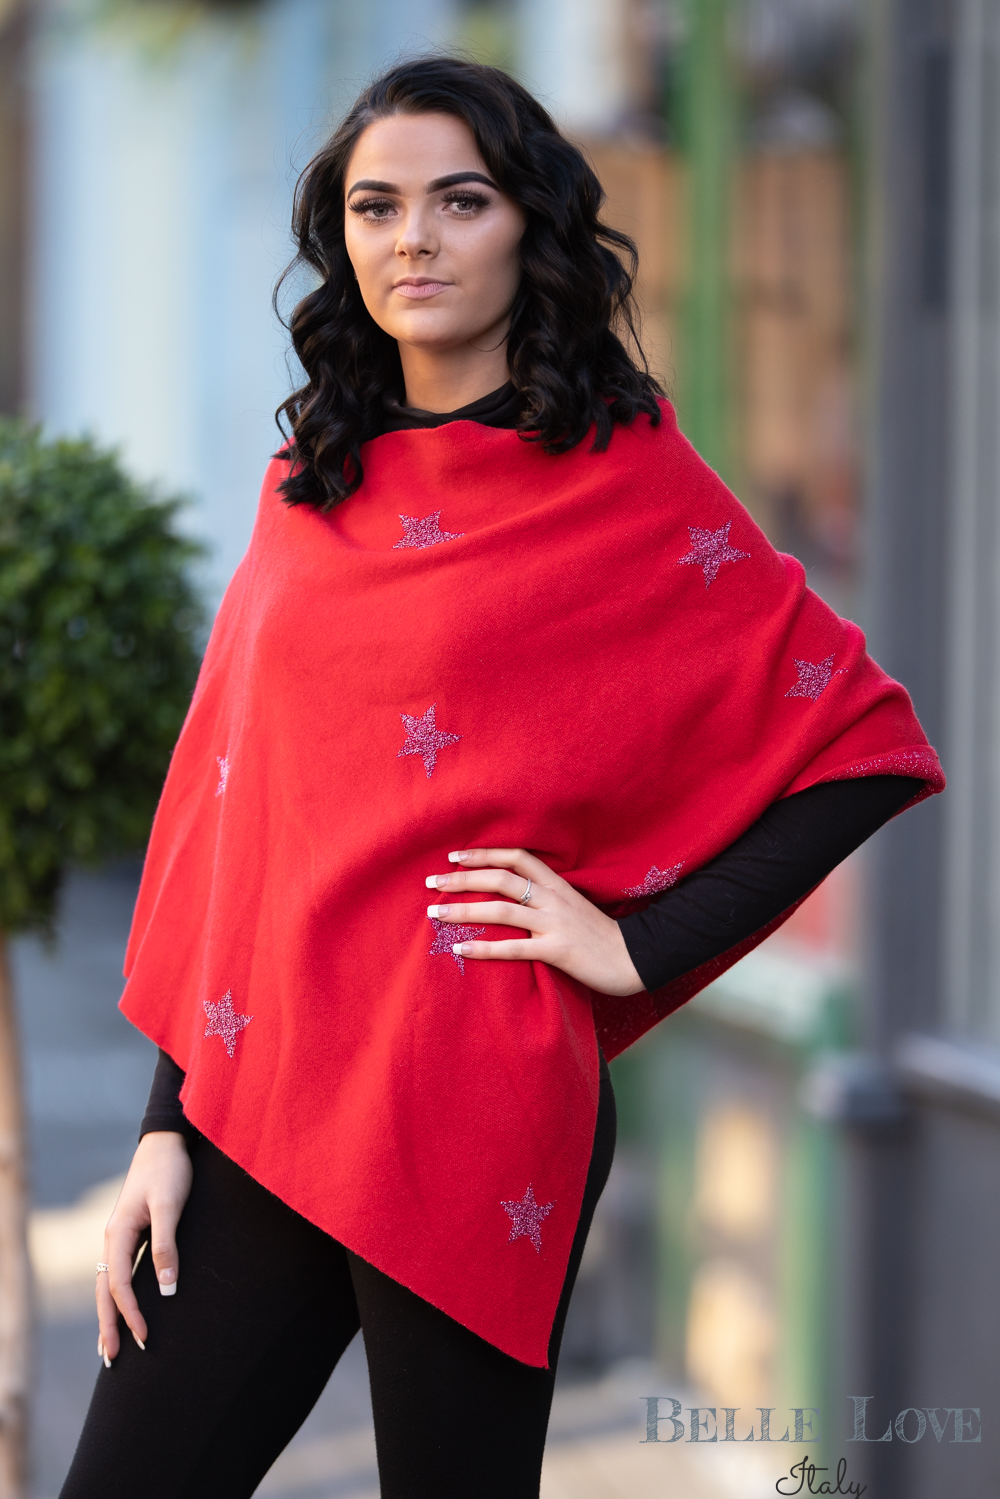 Belle Love Italy Glitter Star Poncho